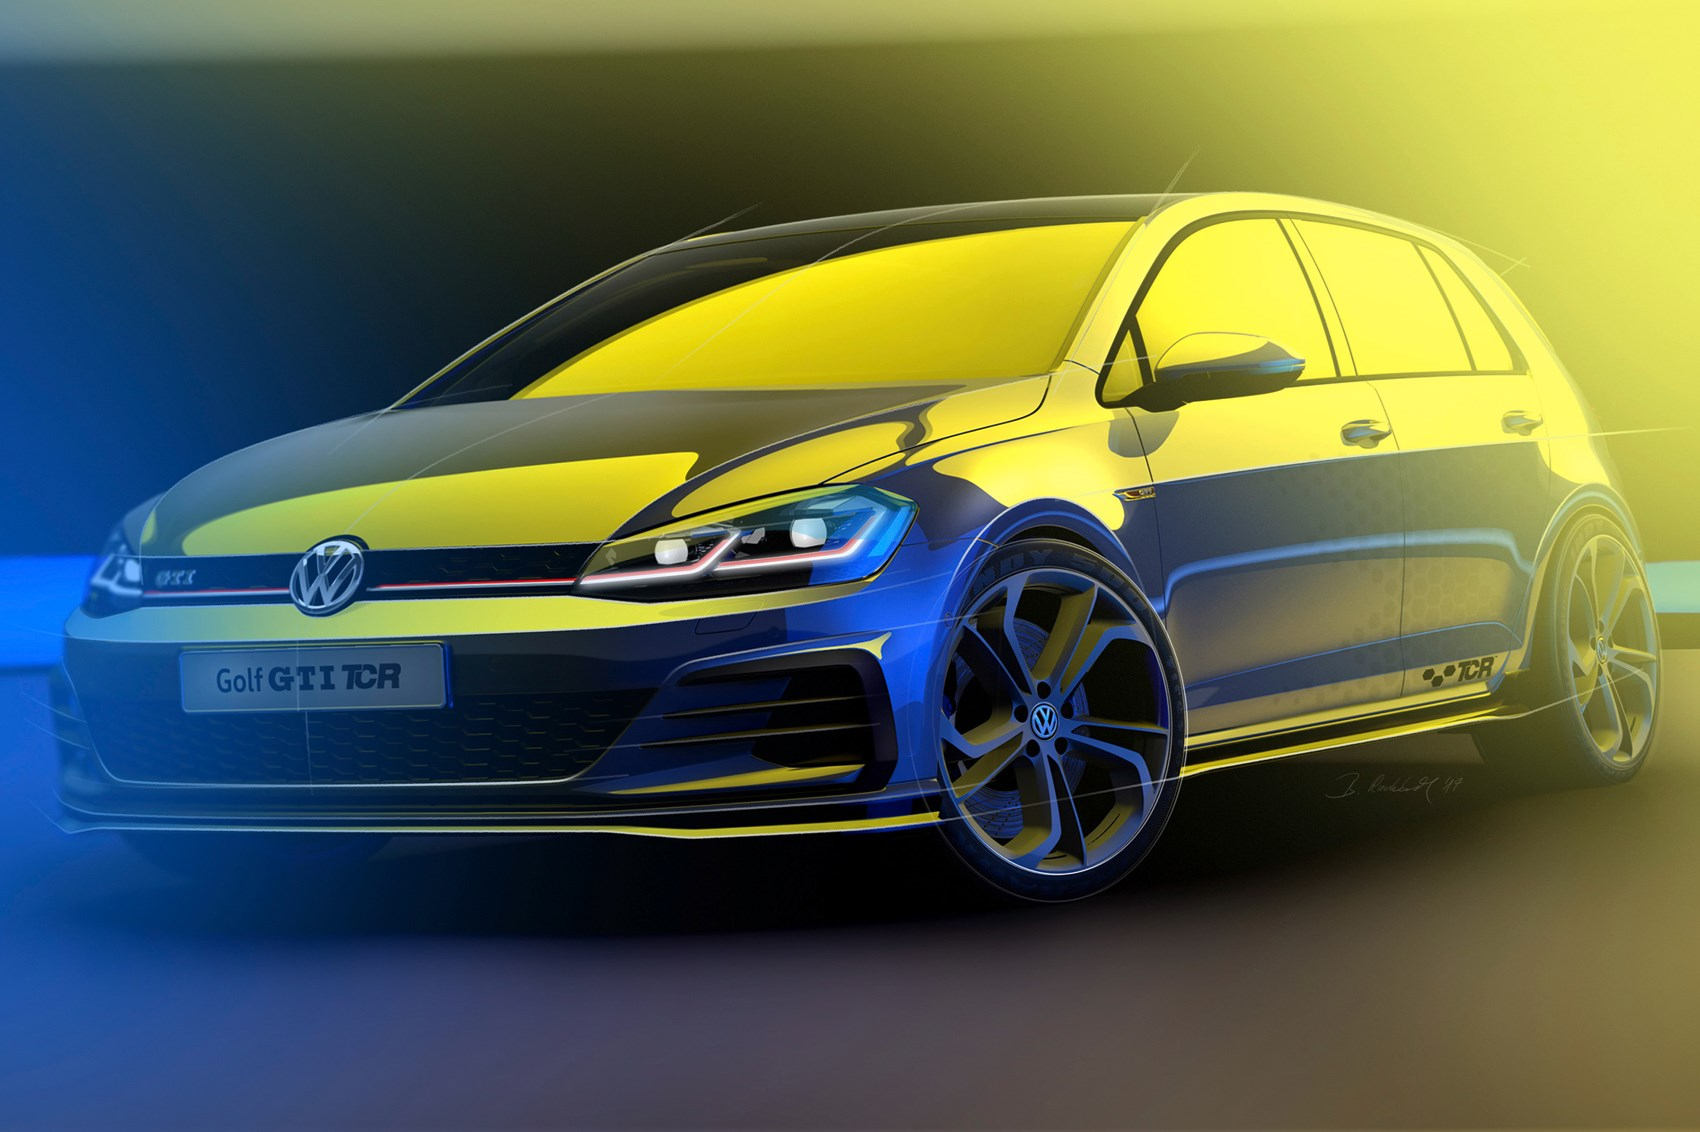 VW Golf GTI TCR heads to Wörthersee with 286-hp